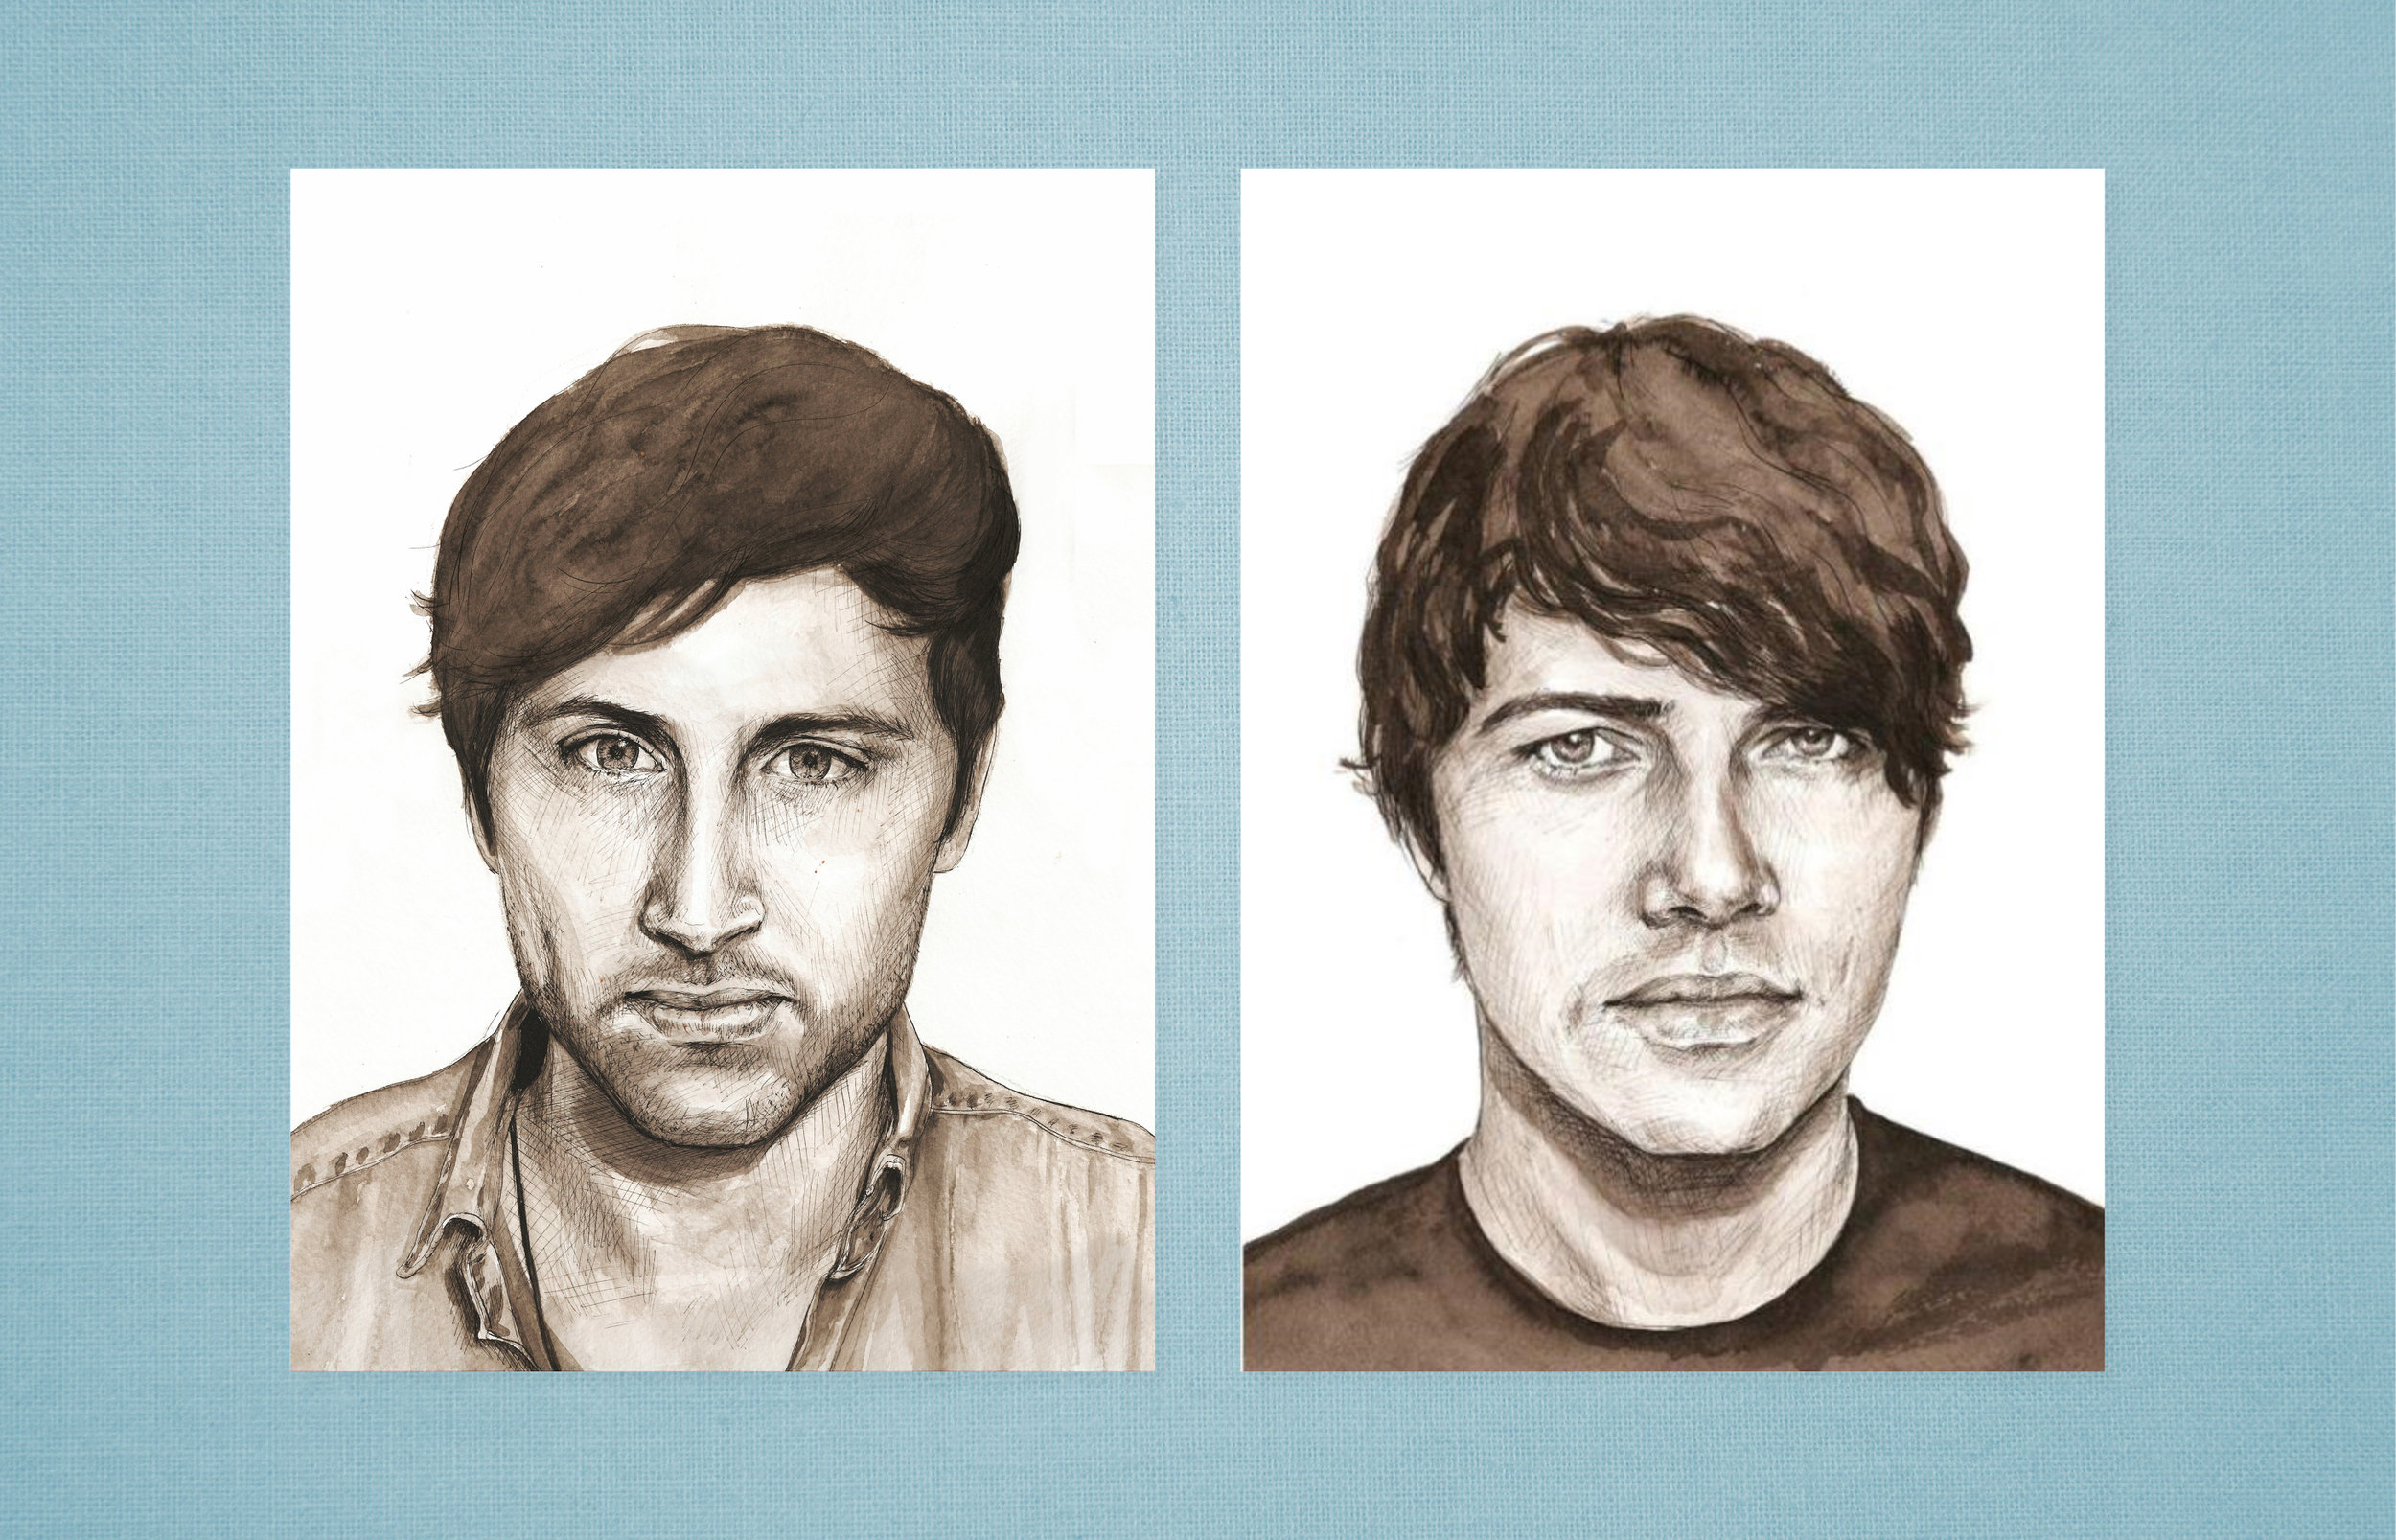 Pen & Ink band portraits for  Small Black 's album 'Limits of Desire'. Watch the official album trailer showing an animation of the painting process  below.